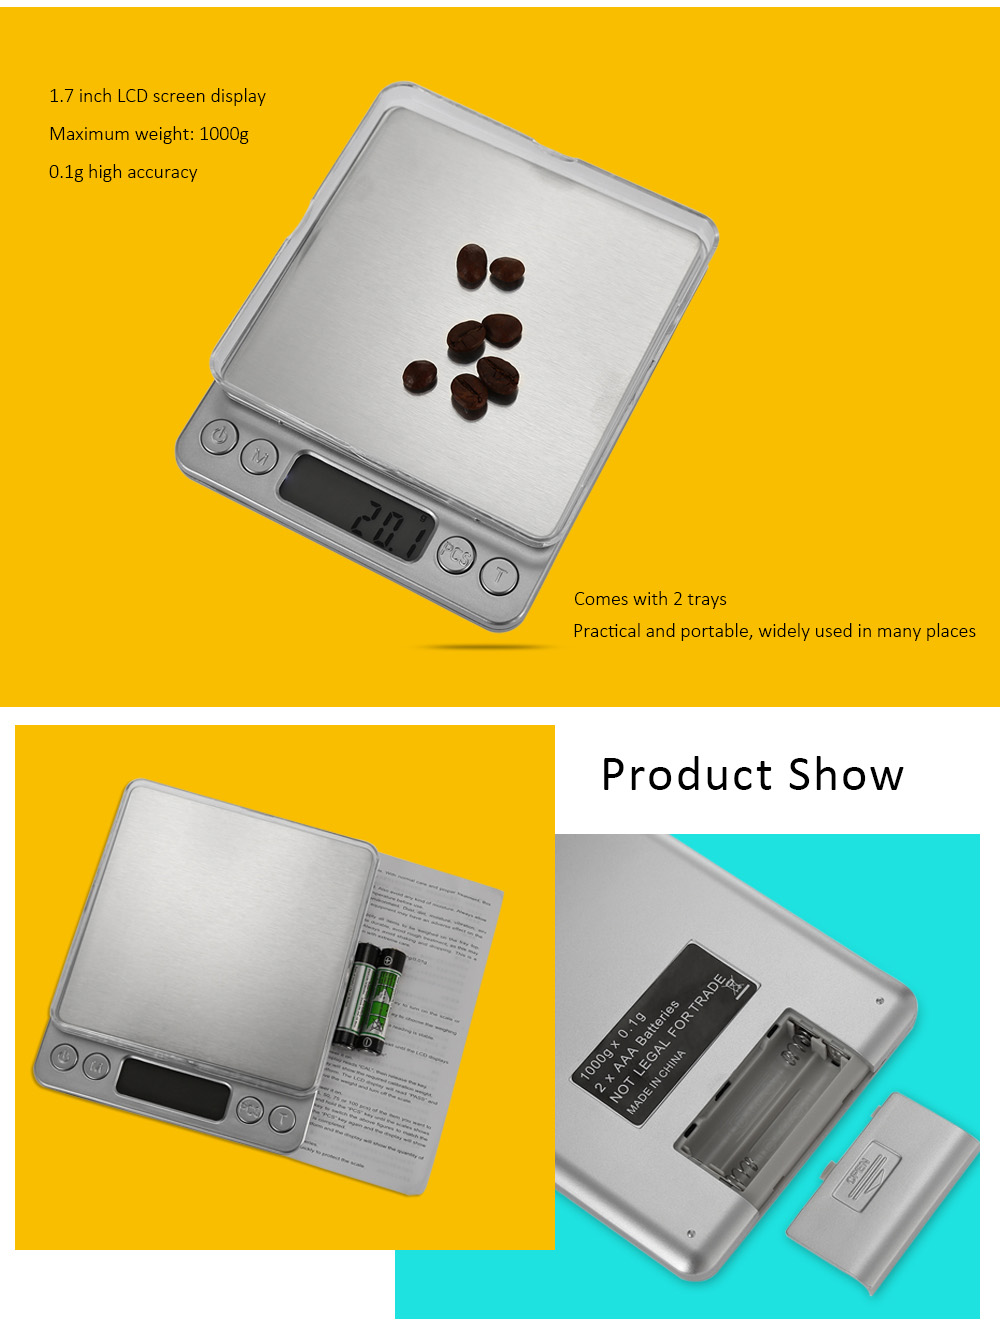 M - 8008 Precise 1000g 1.7 inch LCD Screen Digital Scale